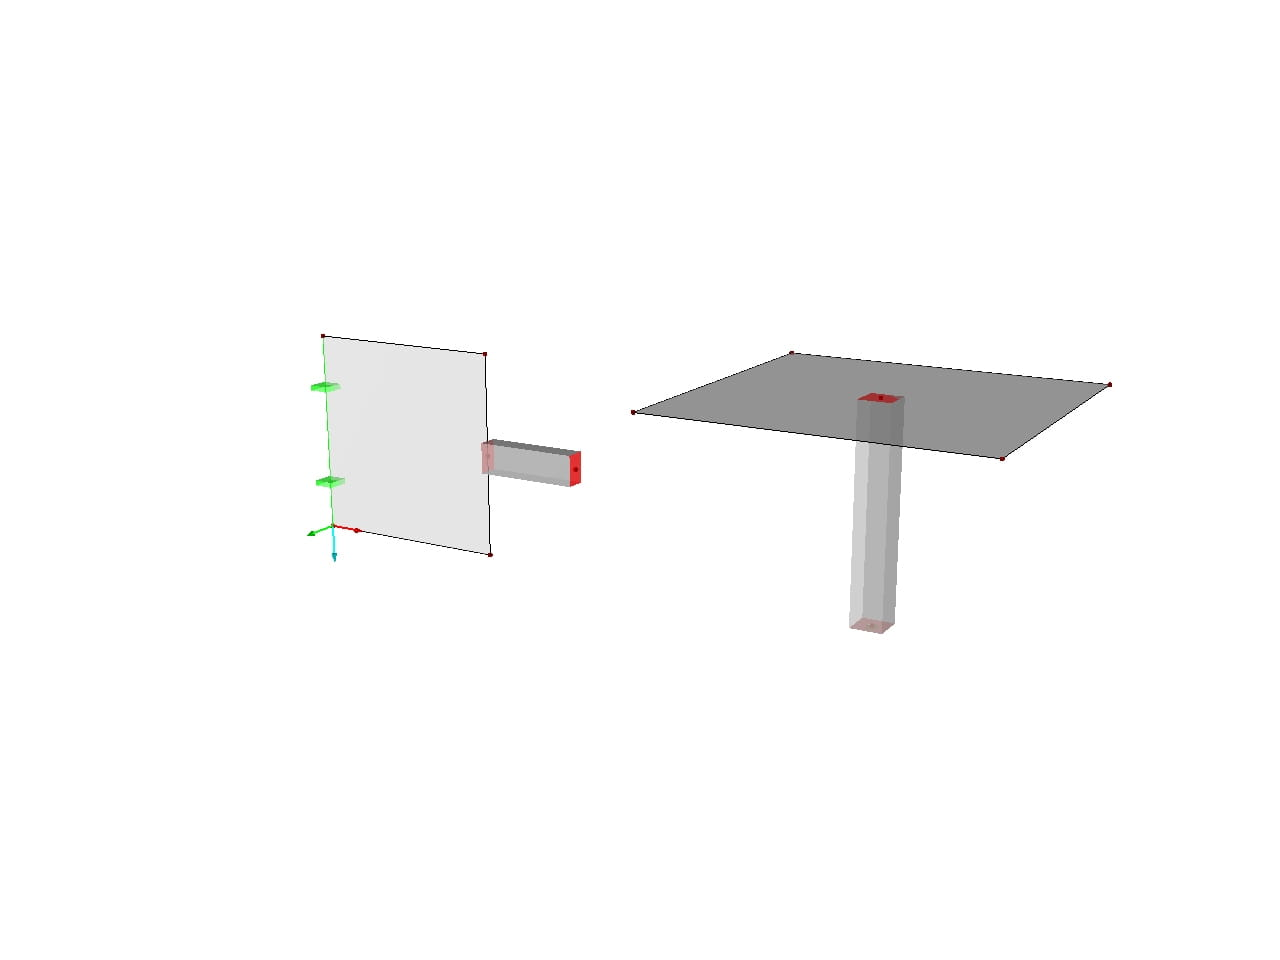 Connecting Member to Surface | FEA Model